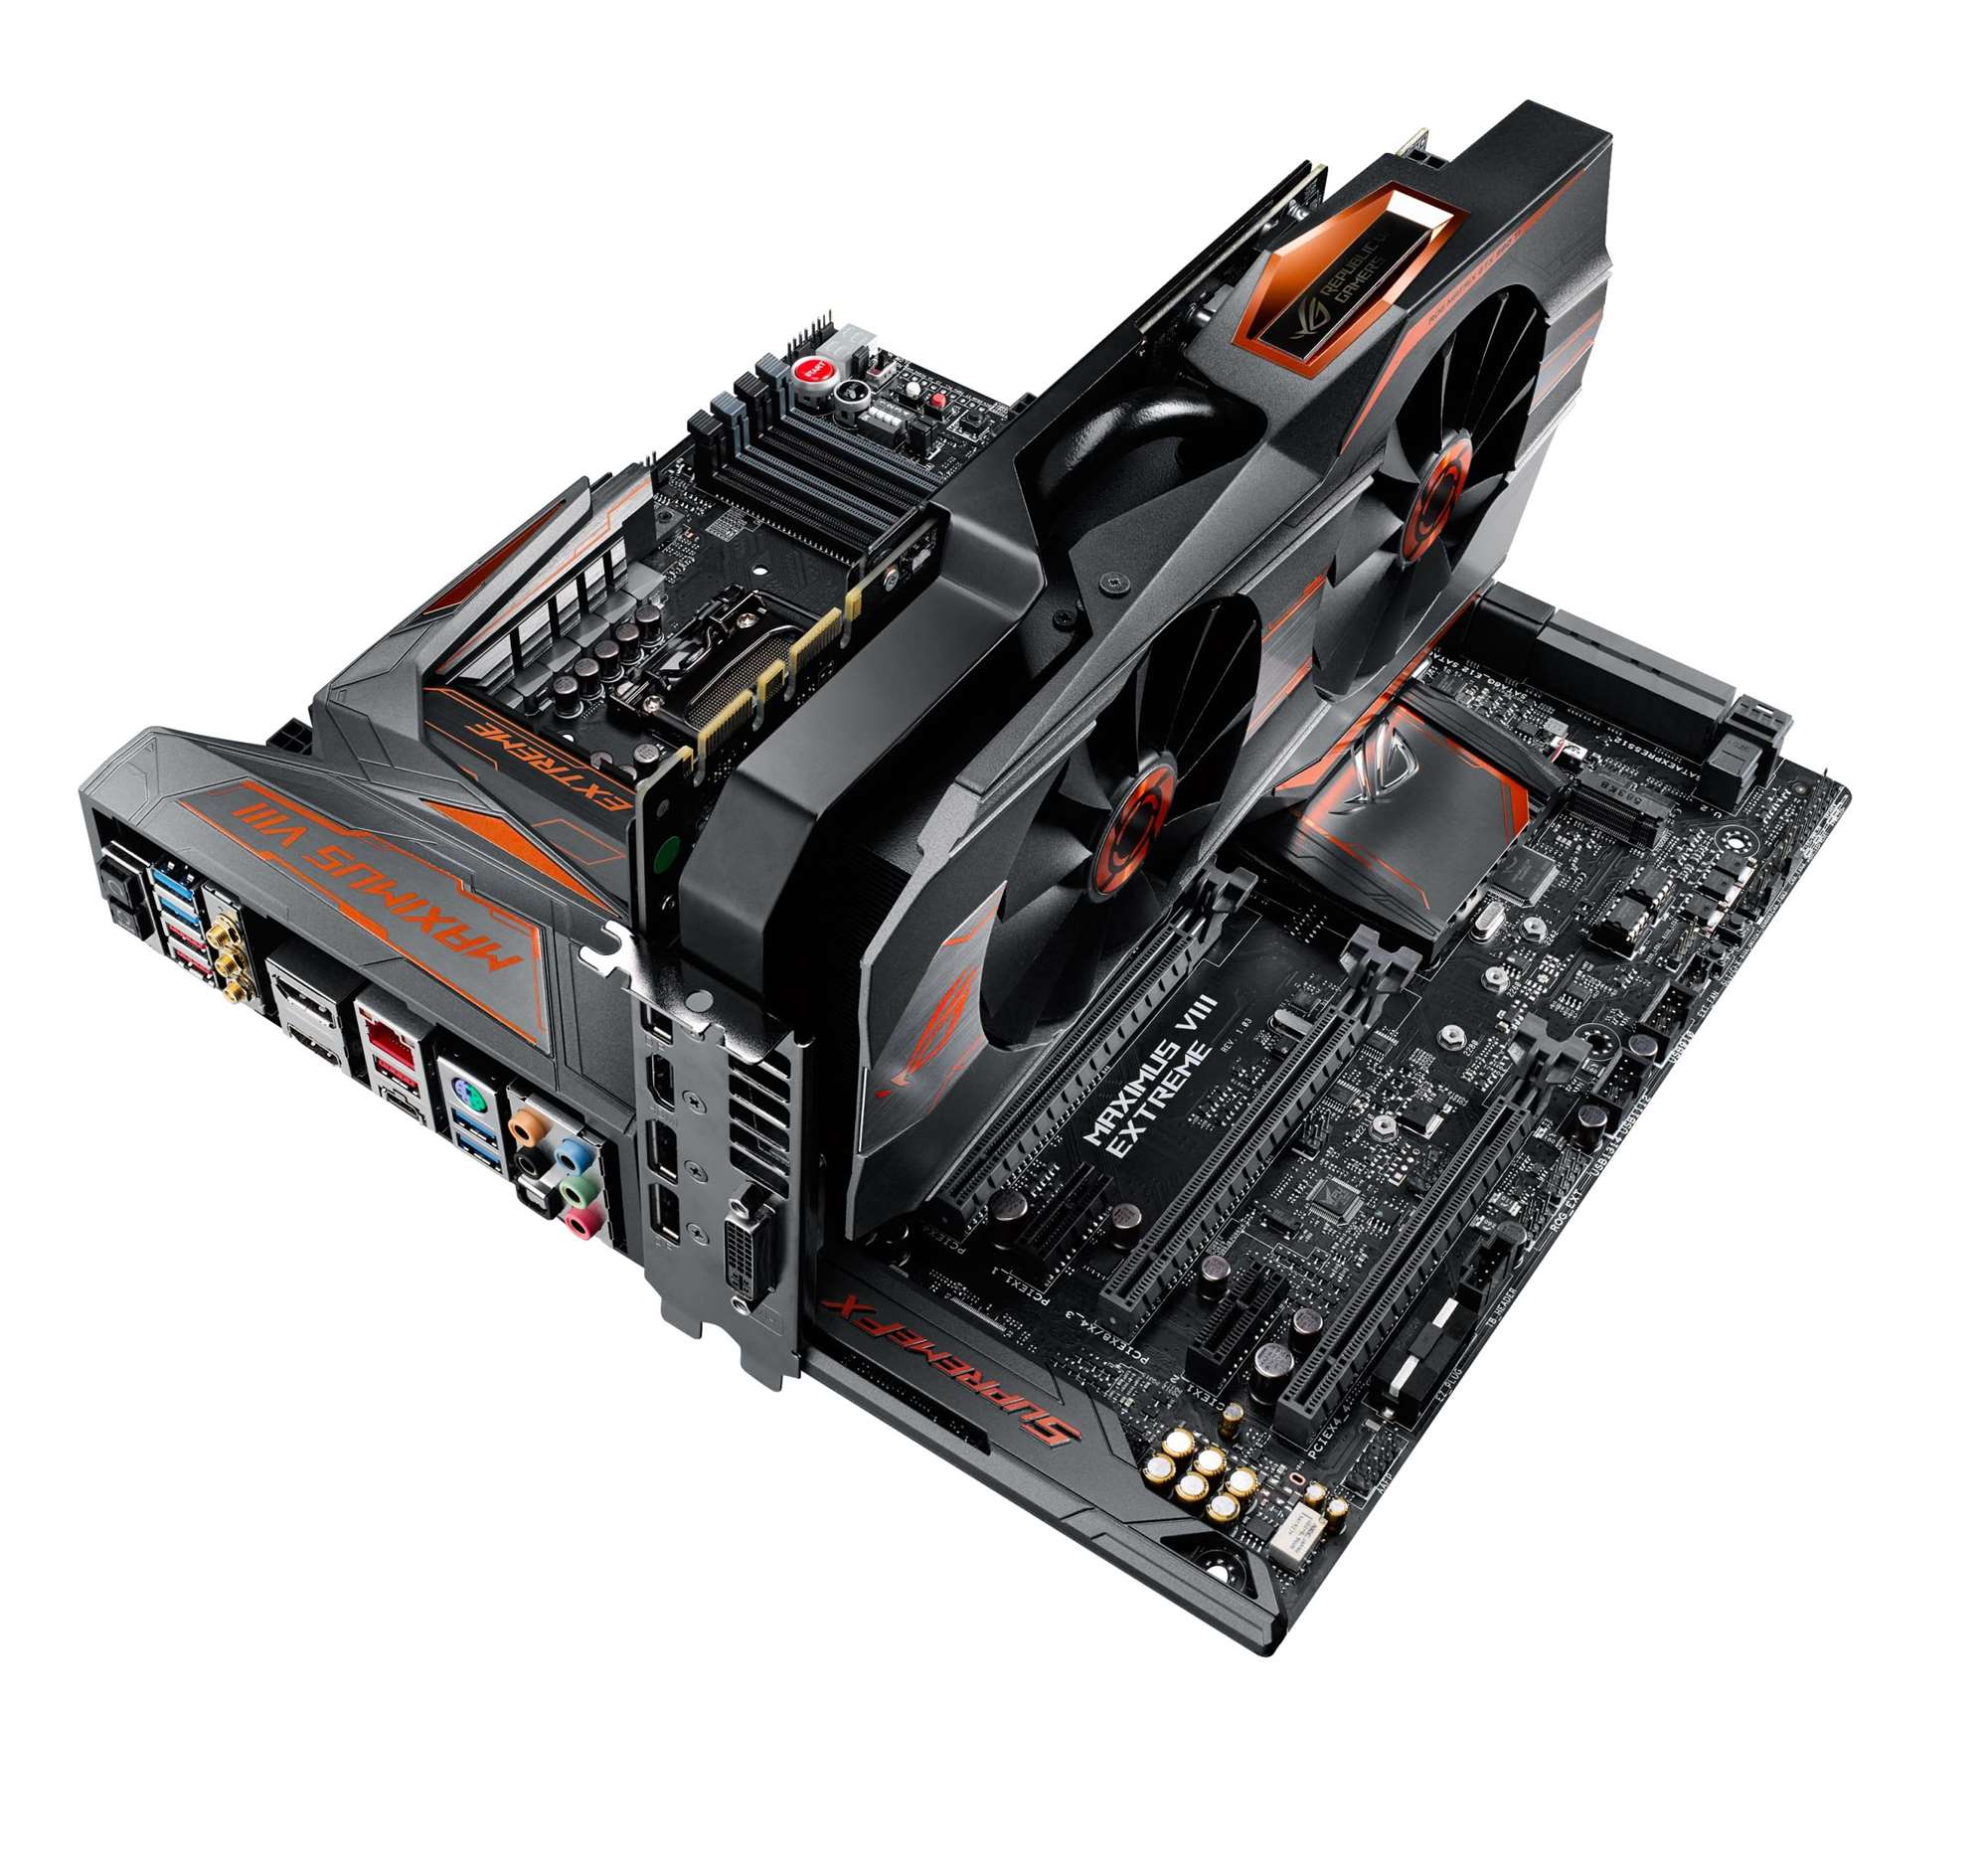 Asus reveals new ROG Maximus VIII mobo, and Matrix GTX 980 Ti | Components | News | PC PowerPlay ...